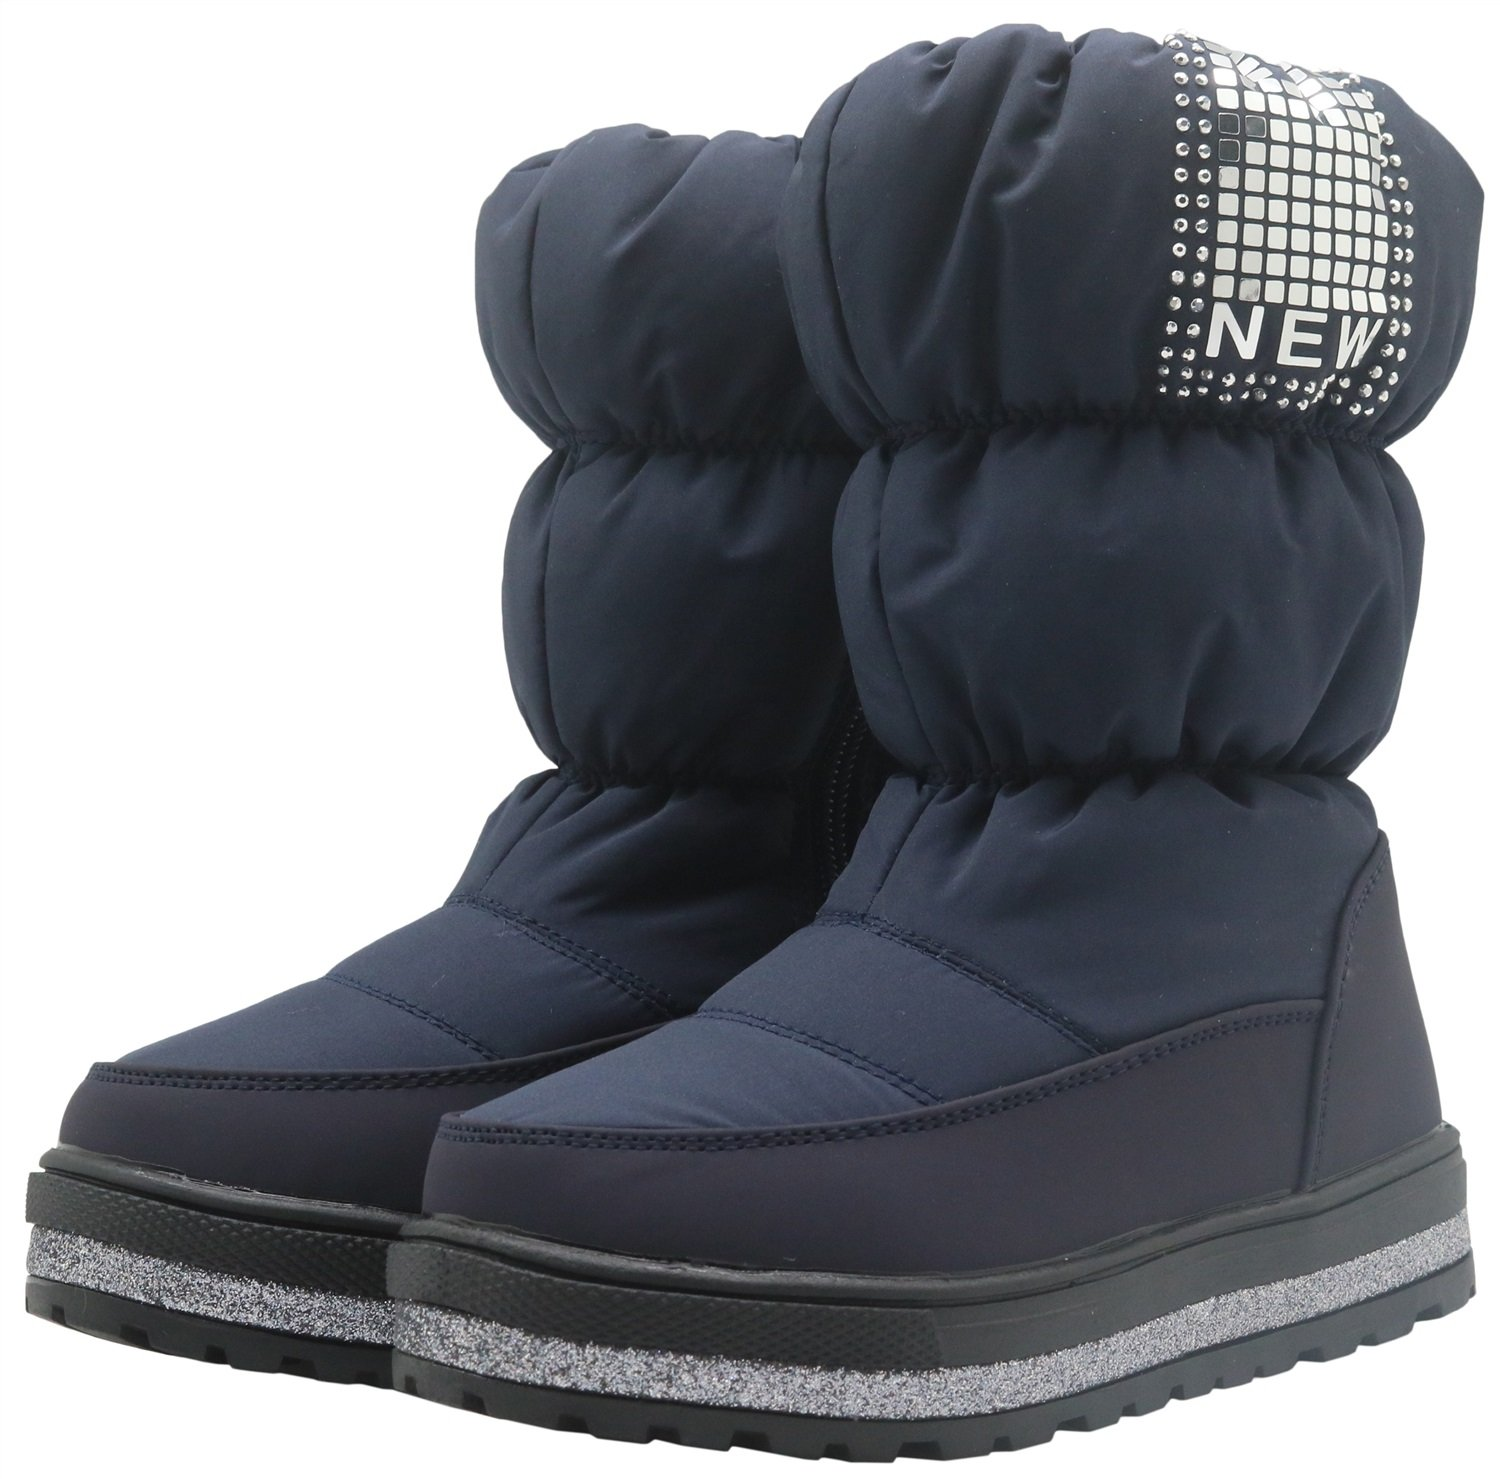 Durable Toddler//Little Kid Color : Blue1 , Size : 8.5 M US Toddler Non-Slip Kids Shoes Girls Snow Boots with Woolen Lining